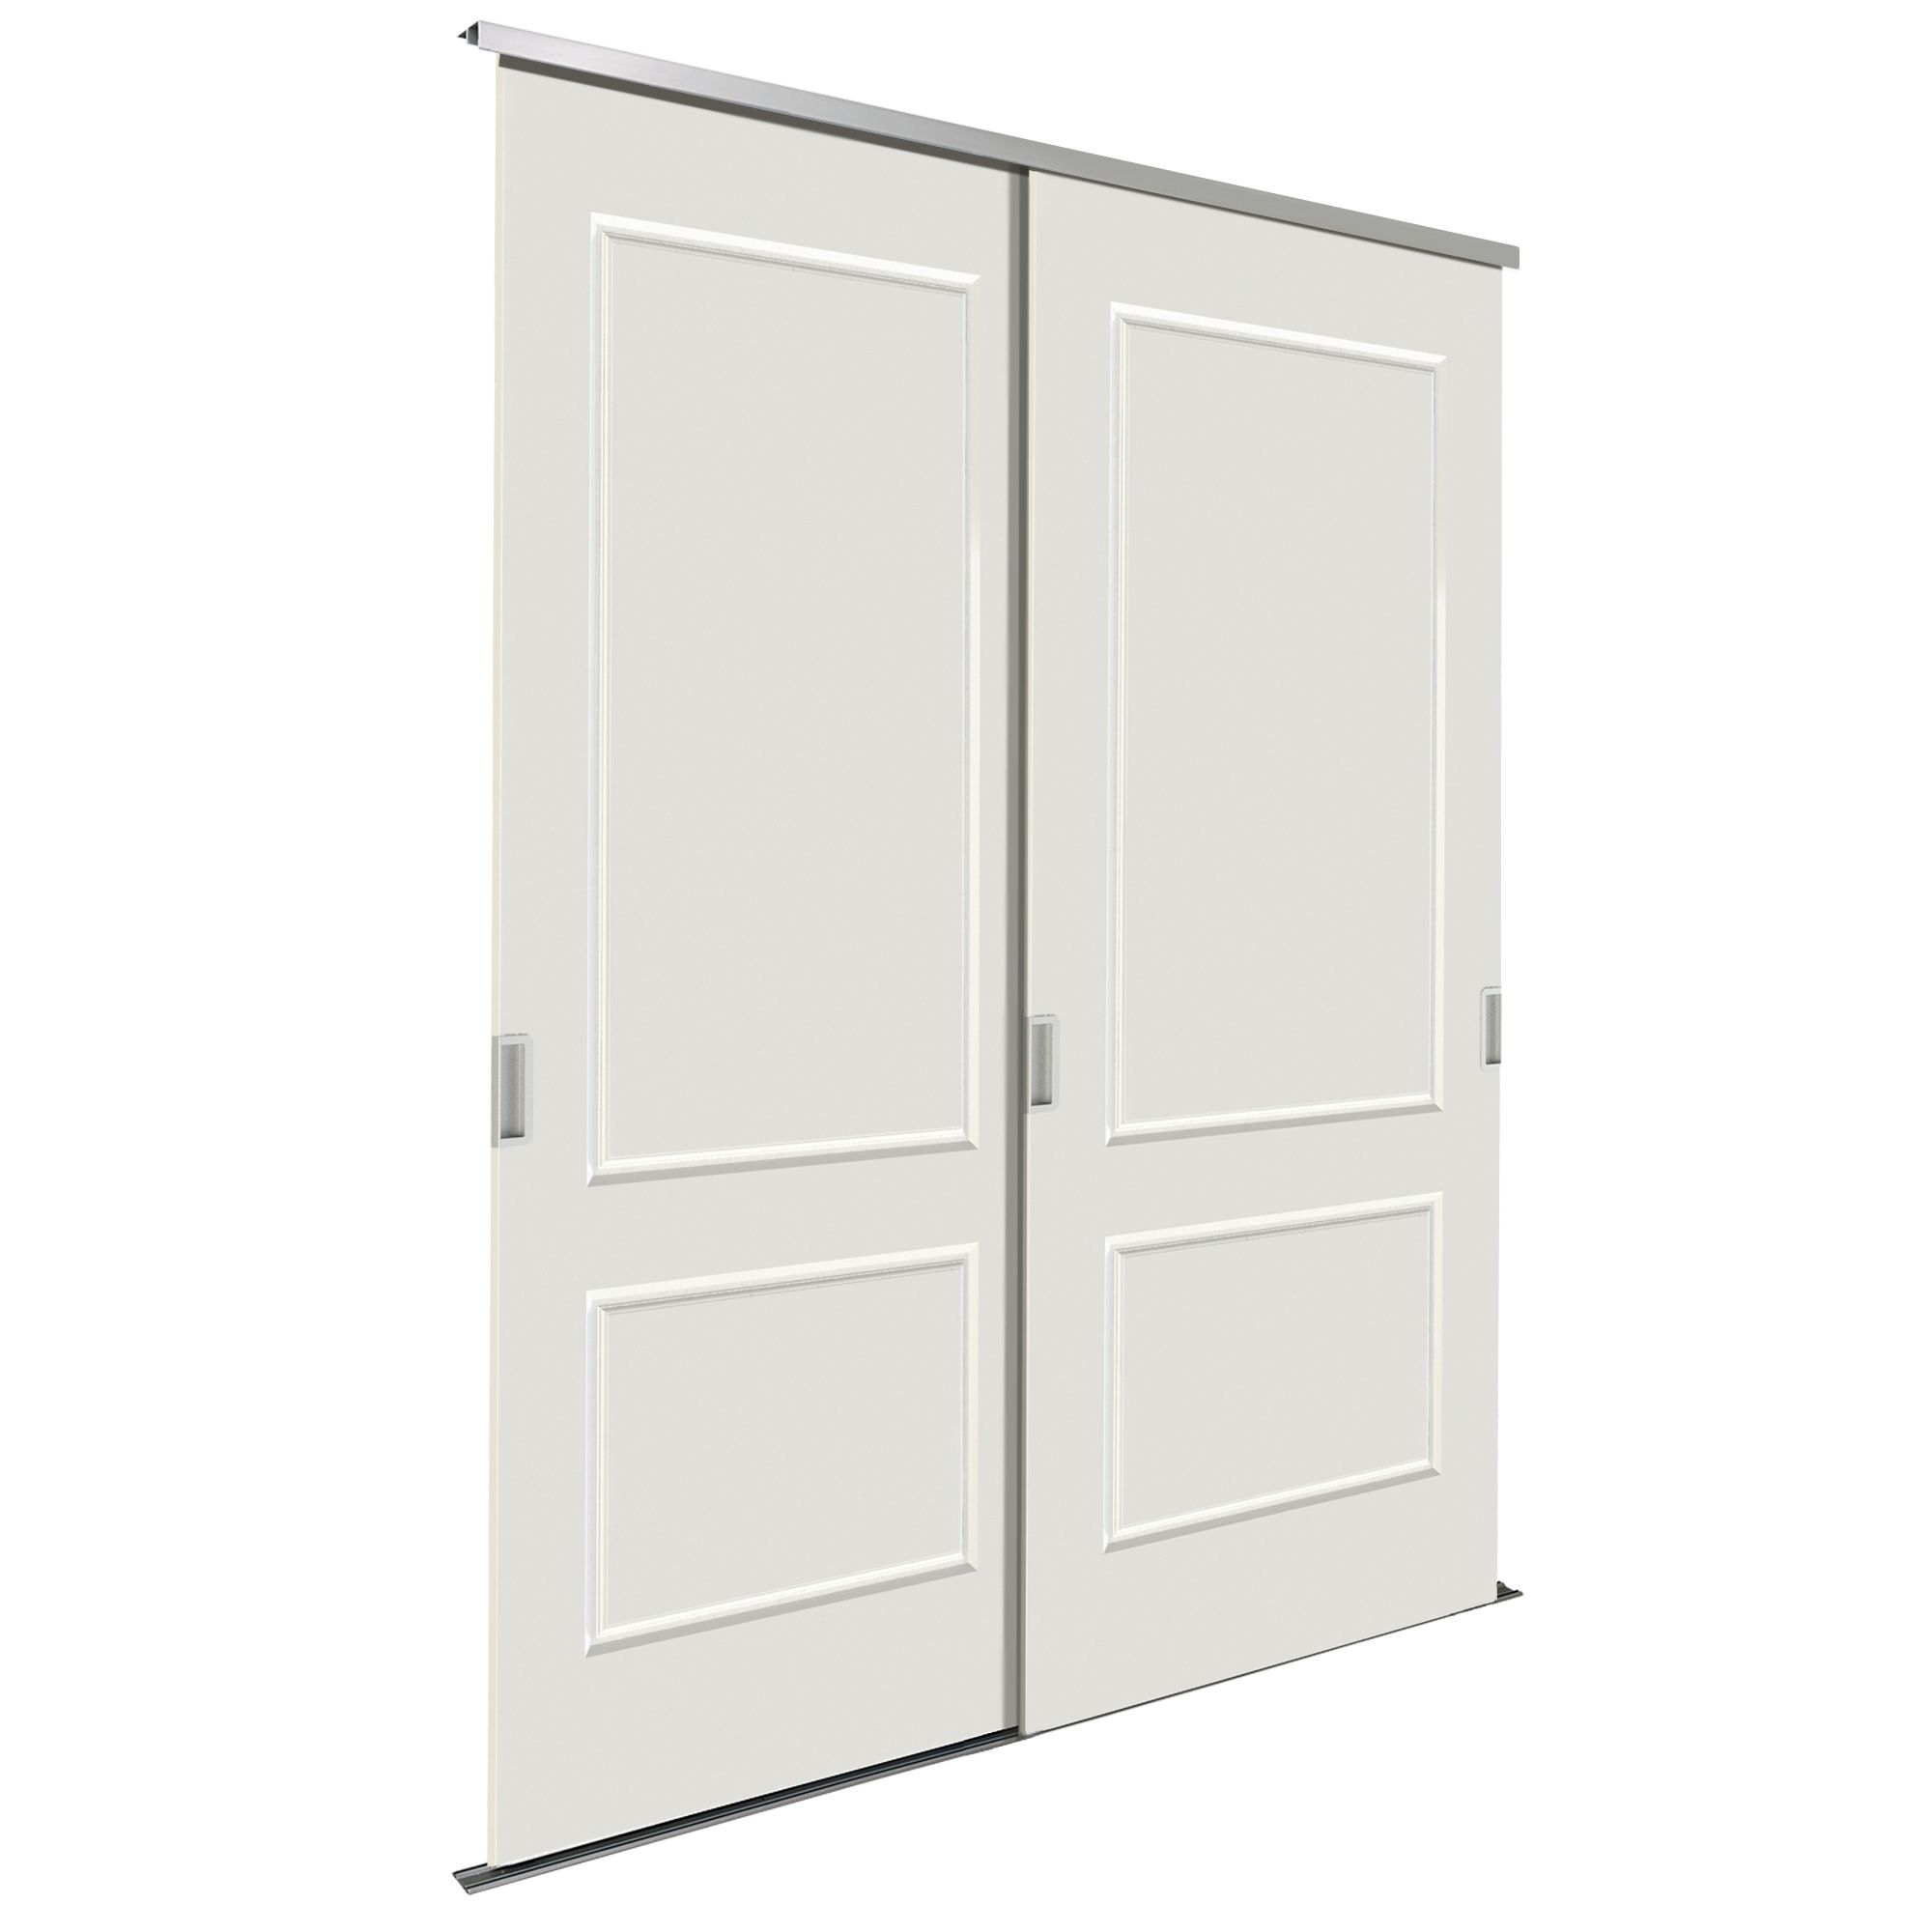 Easy fit panelled pre painted internal door kit for for B q bedrooms fitted